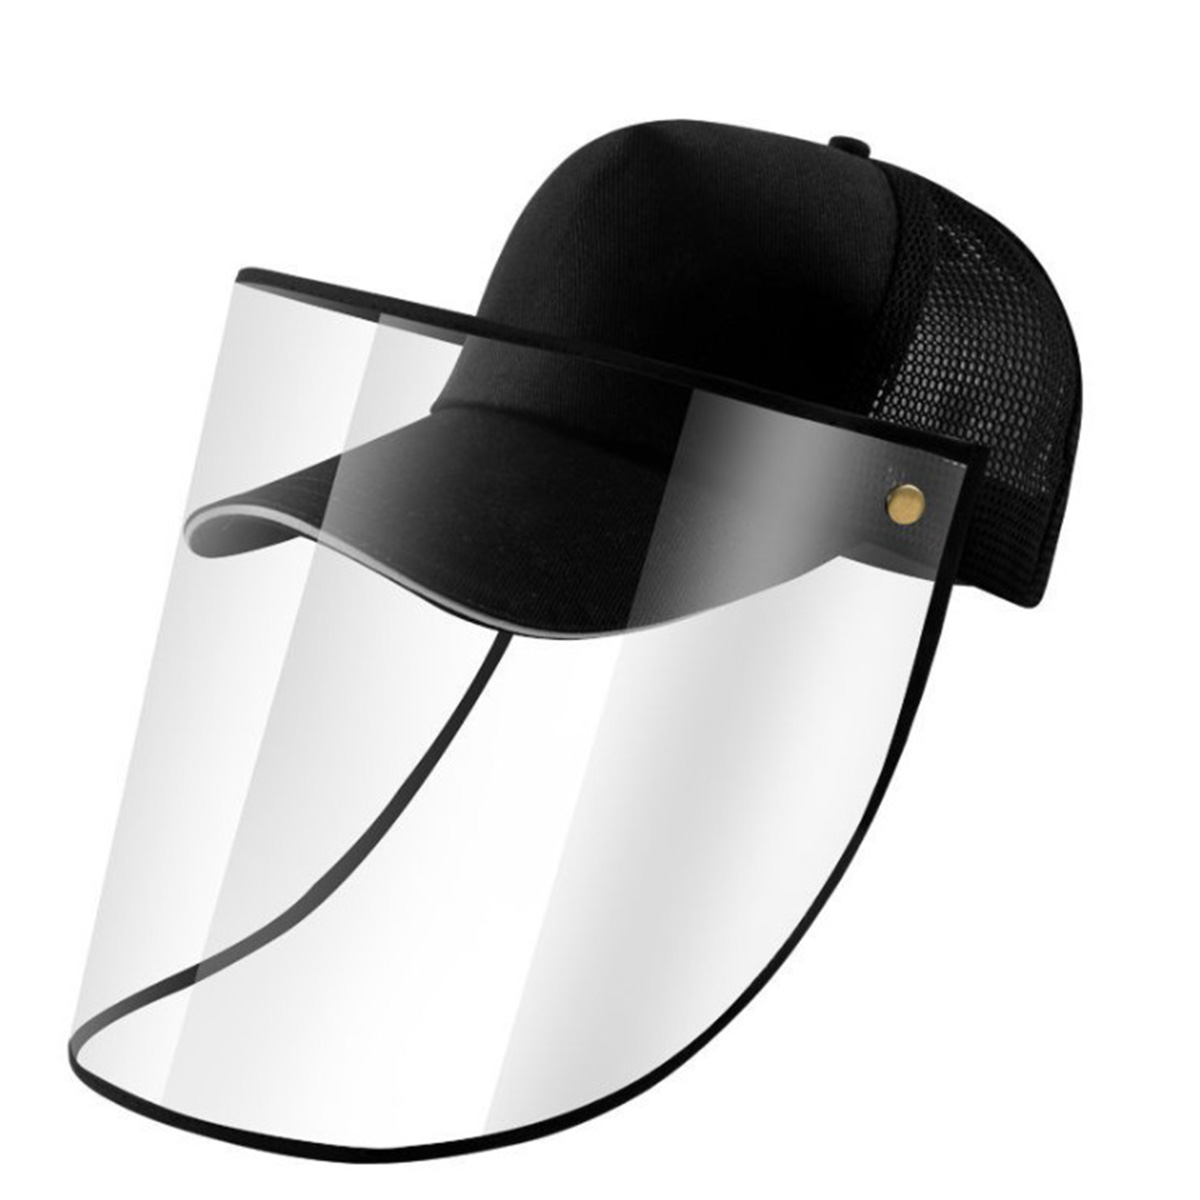 Anti-spray Mask Detachable Face Shield Protective Peaked Cap Solid Color Eye Protection Baseball Hat